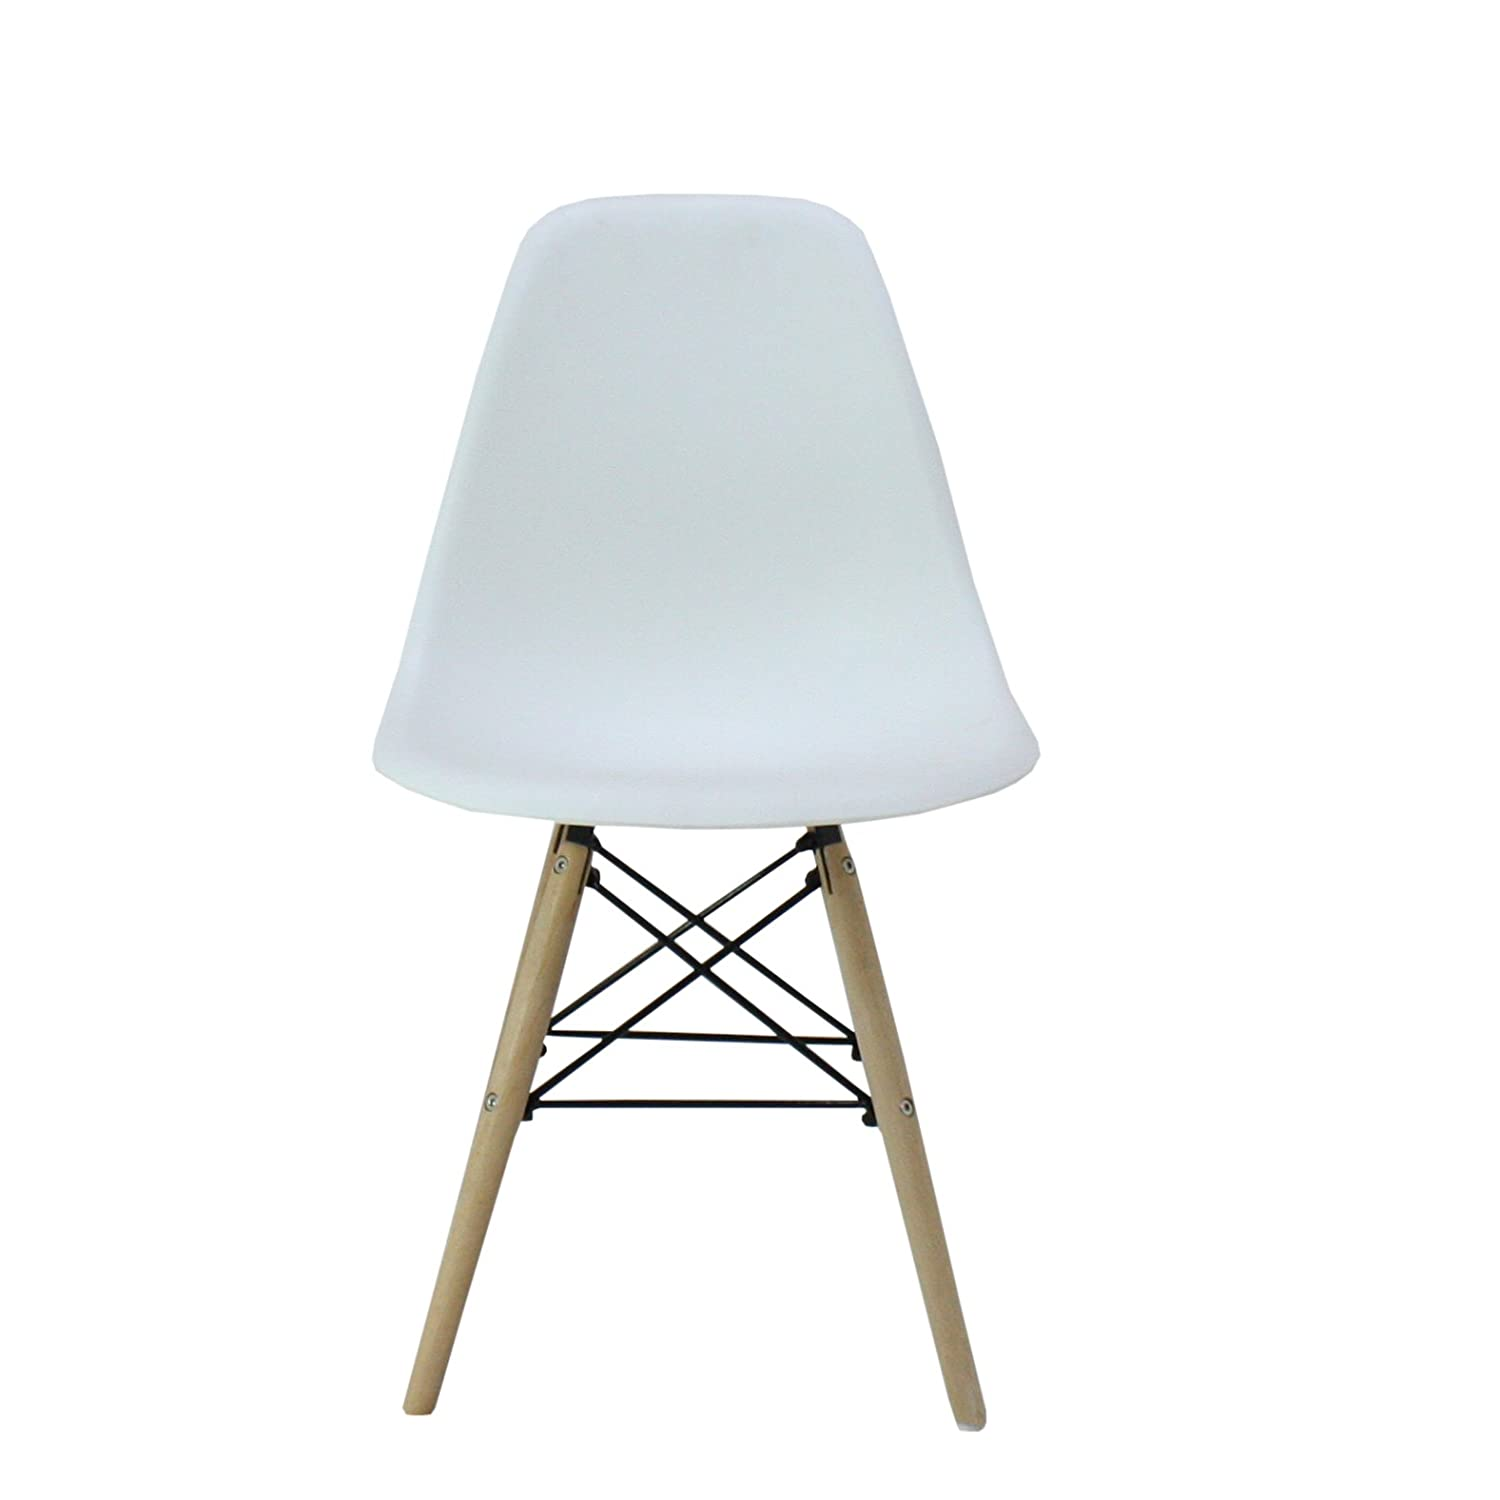 P&N Homewares Moda Dining Chair Plastic Wood Retro Dining Chairs